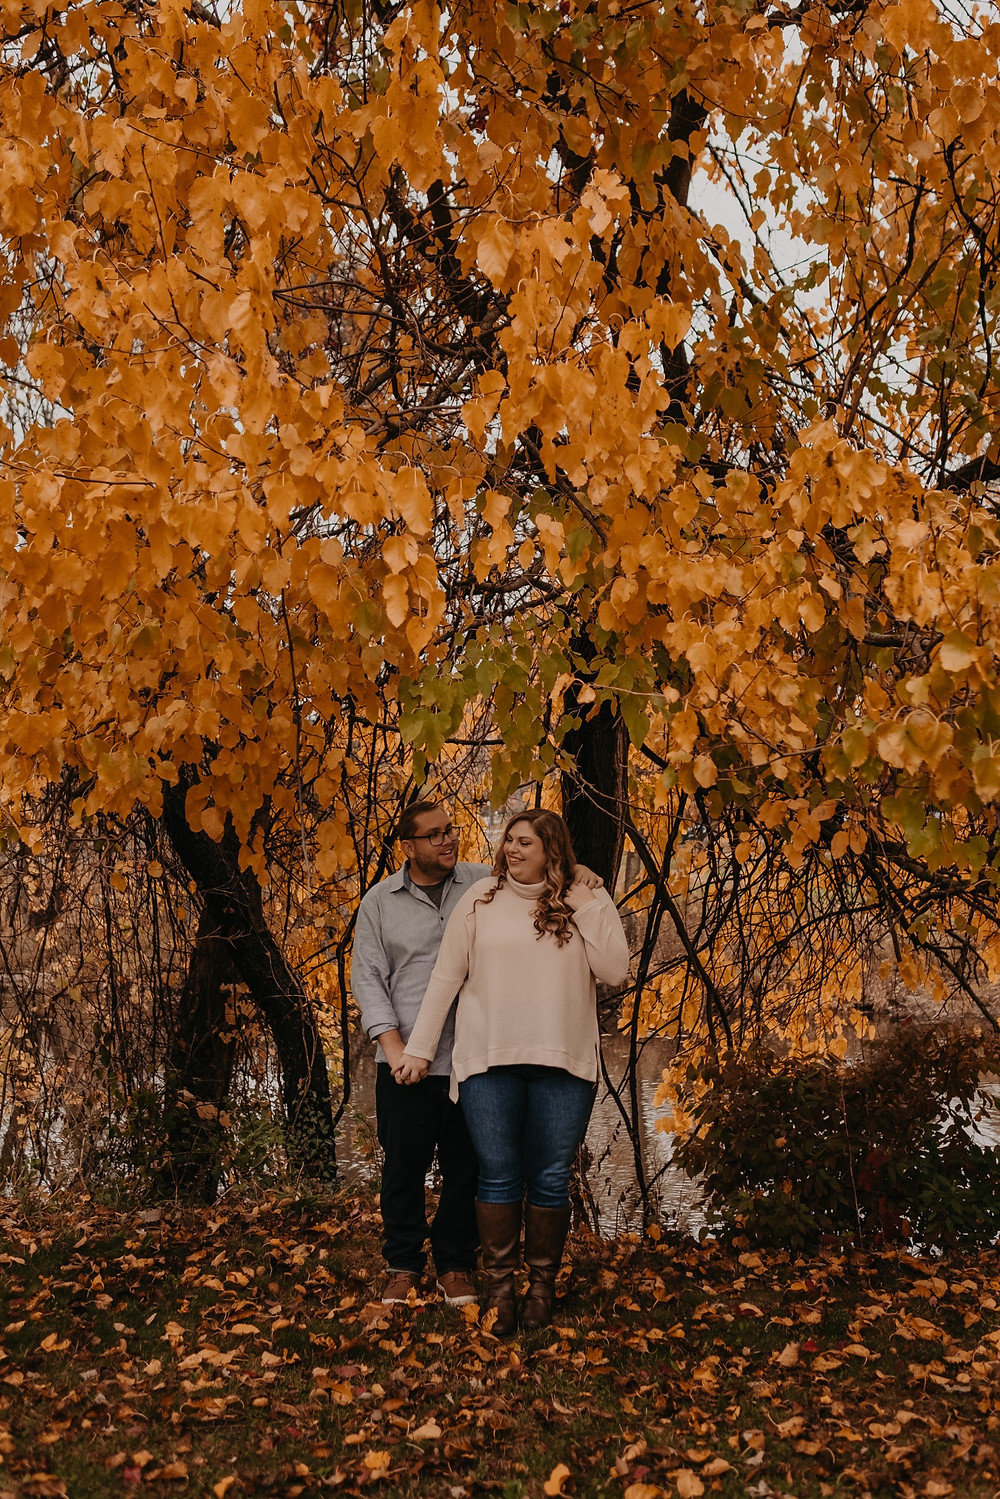 Engaged couple in fall colors in Michigan. Photographed by Nicole Leanne Photography.